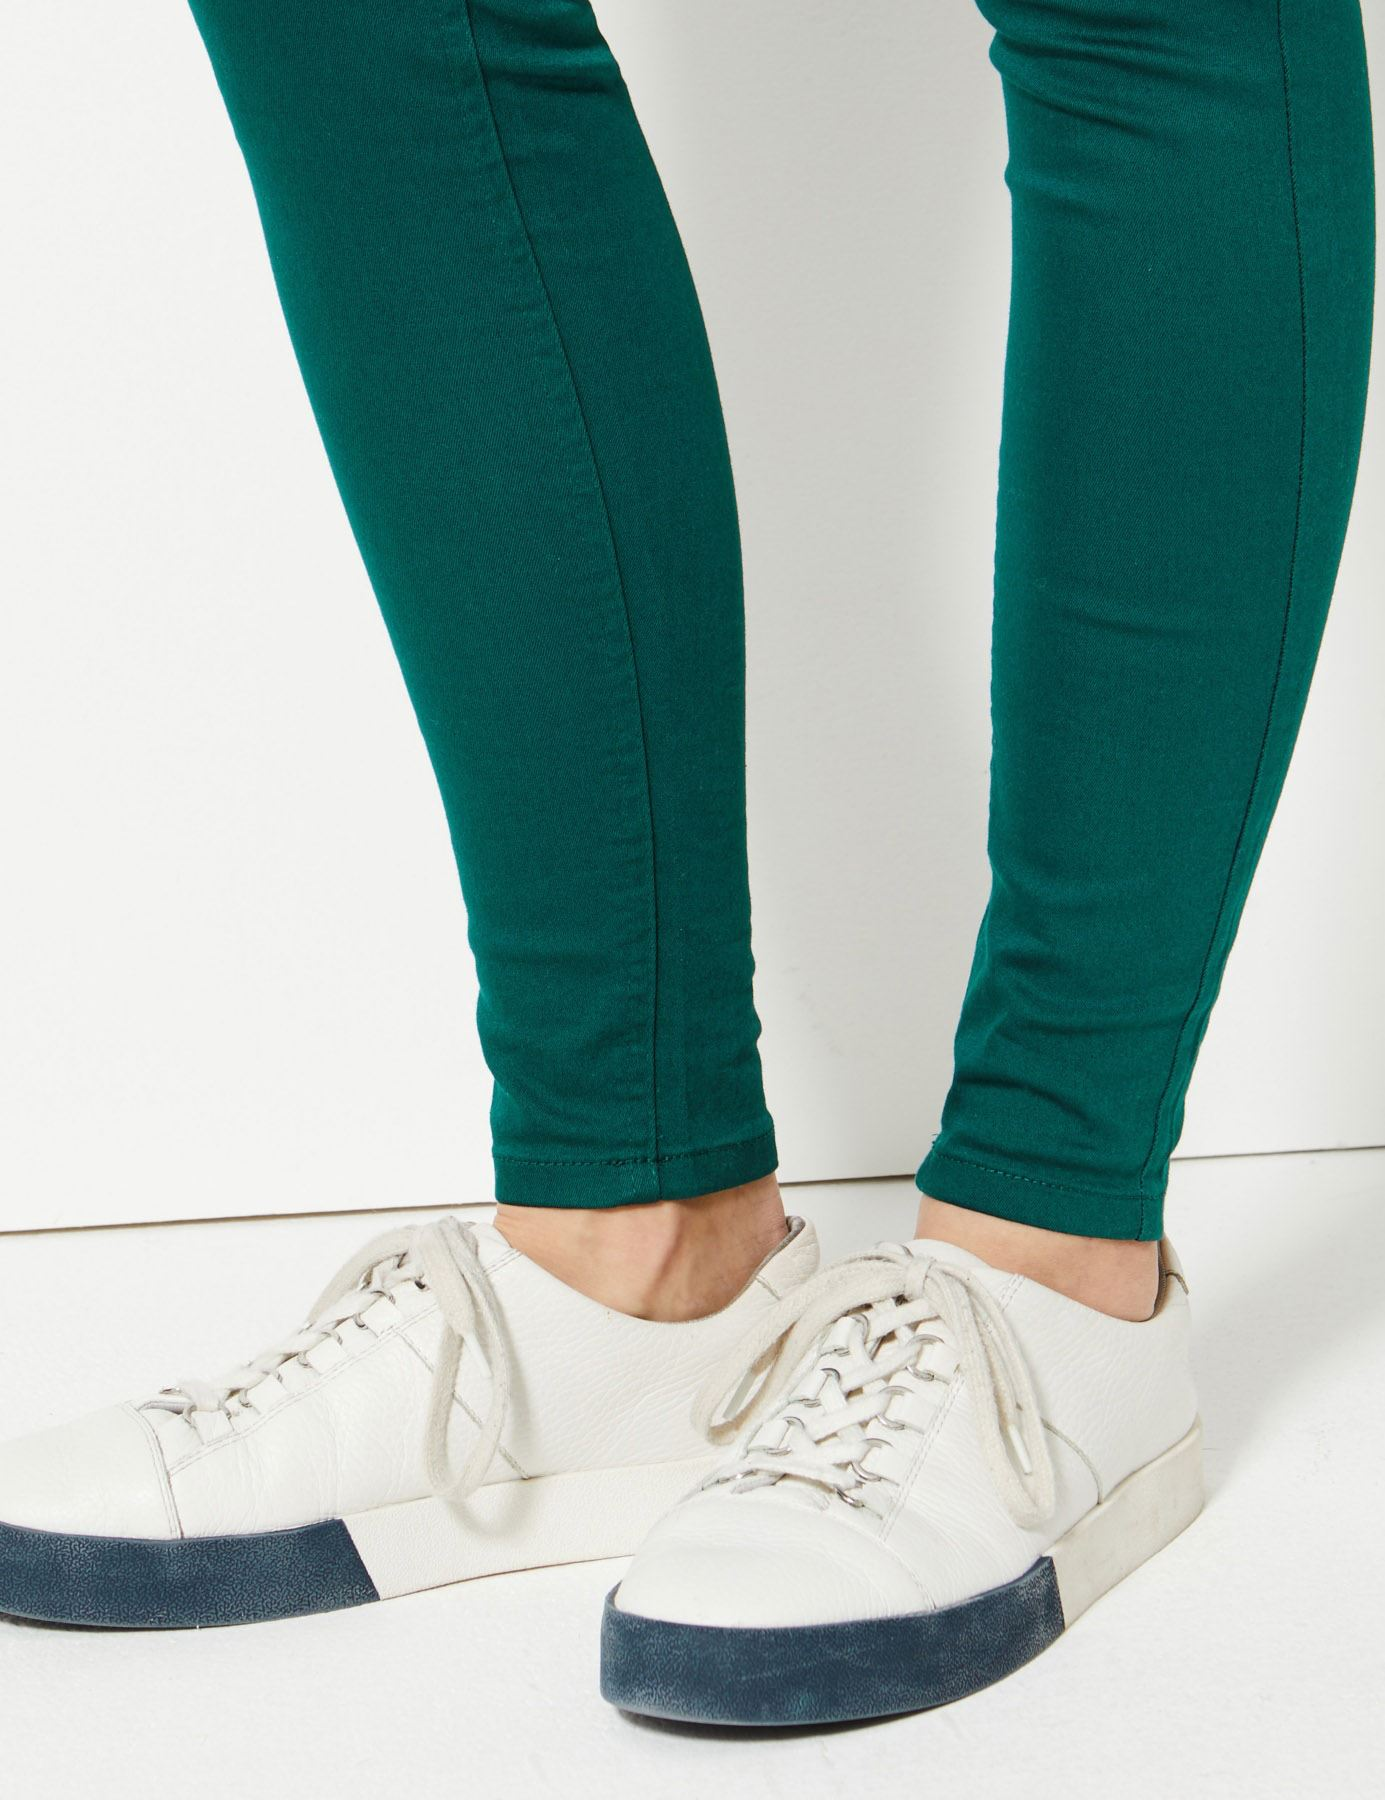 NEW-Ex-M-amp-S-Womens-Stretch-Fit-High-Waist-Skinny-Jeggings-Size-8-10-12-14-16-18 thumbnail 5